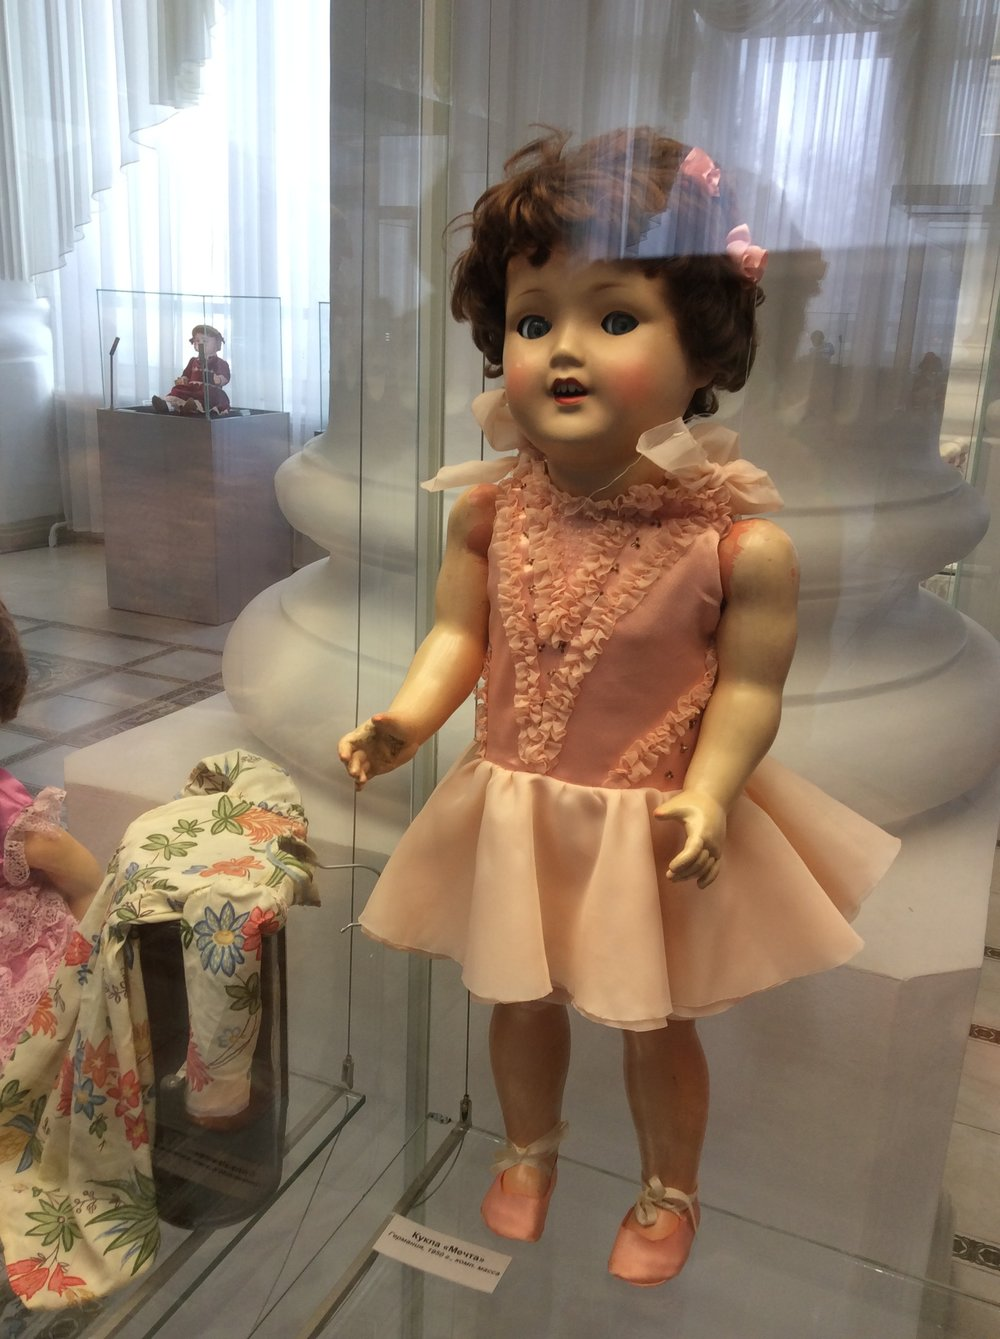 Speaking of feats of strength, this Soviet-era doll currently on display at the Novosibirsk Regional Museum seems to have followed Barry Bonds' diet a little too closely.